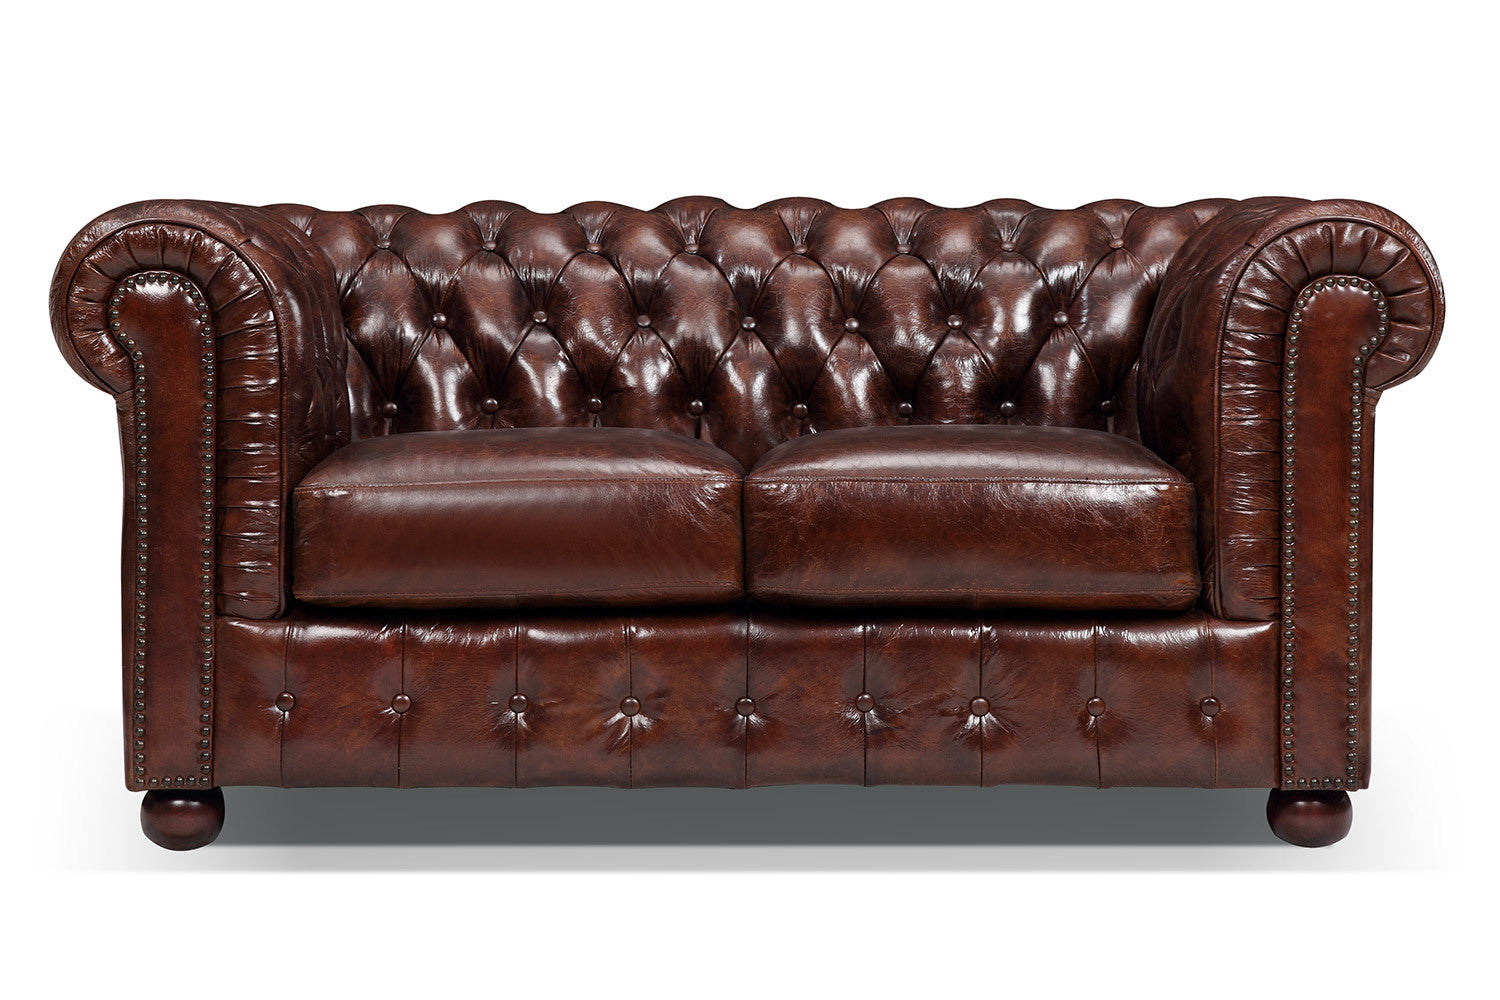 Canap chesterfield original 2 places rose moore for Canape chesterfield cuir